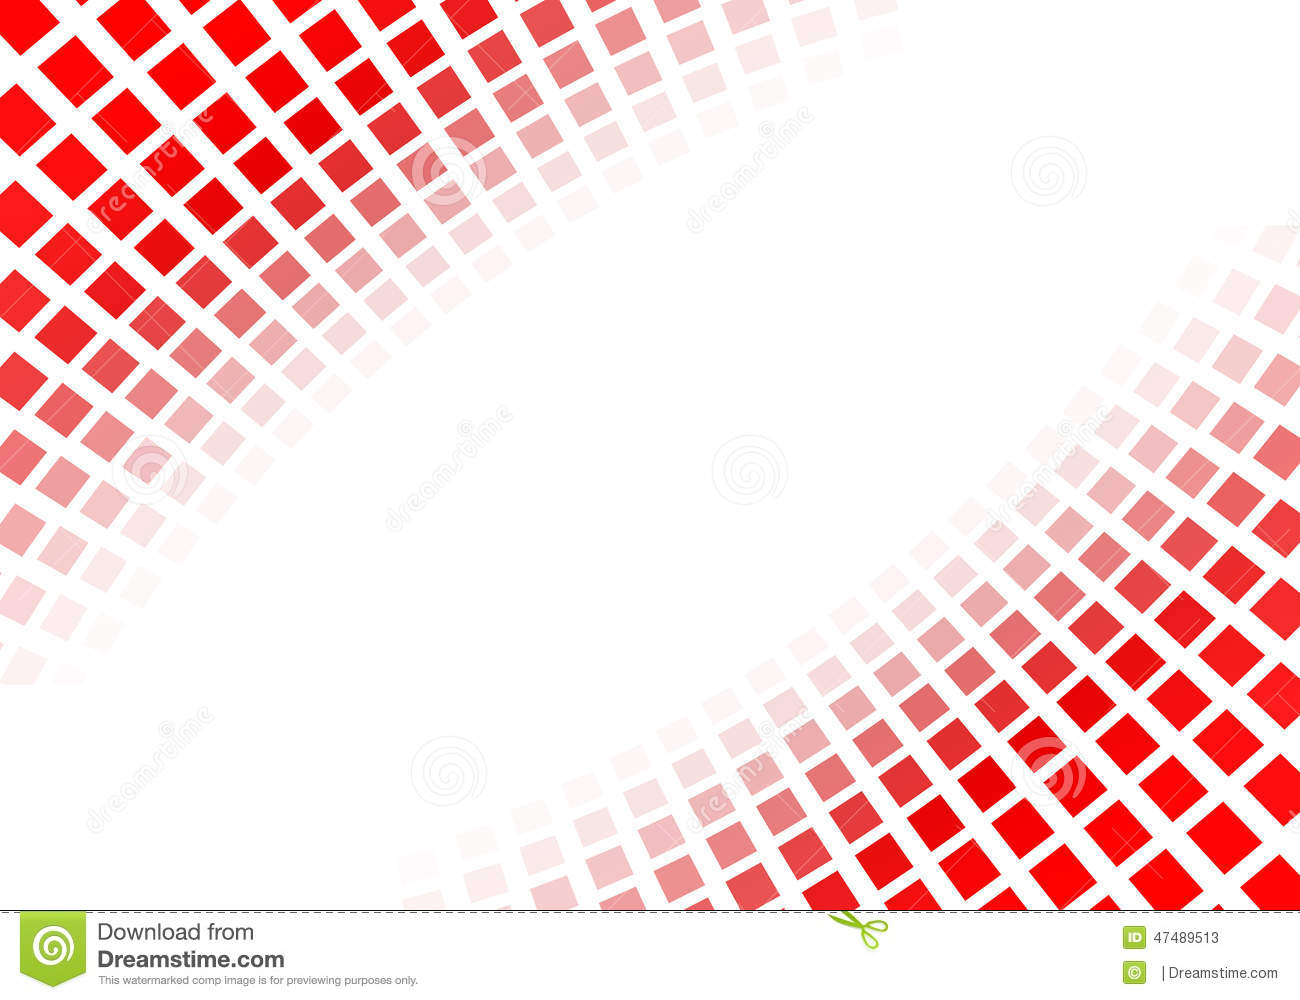 Abstract red squares stock illustration. Illustration of ...